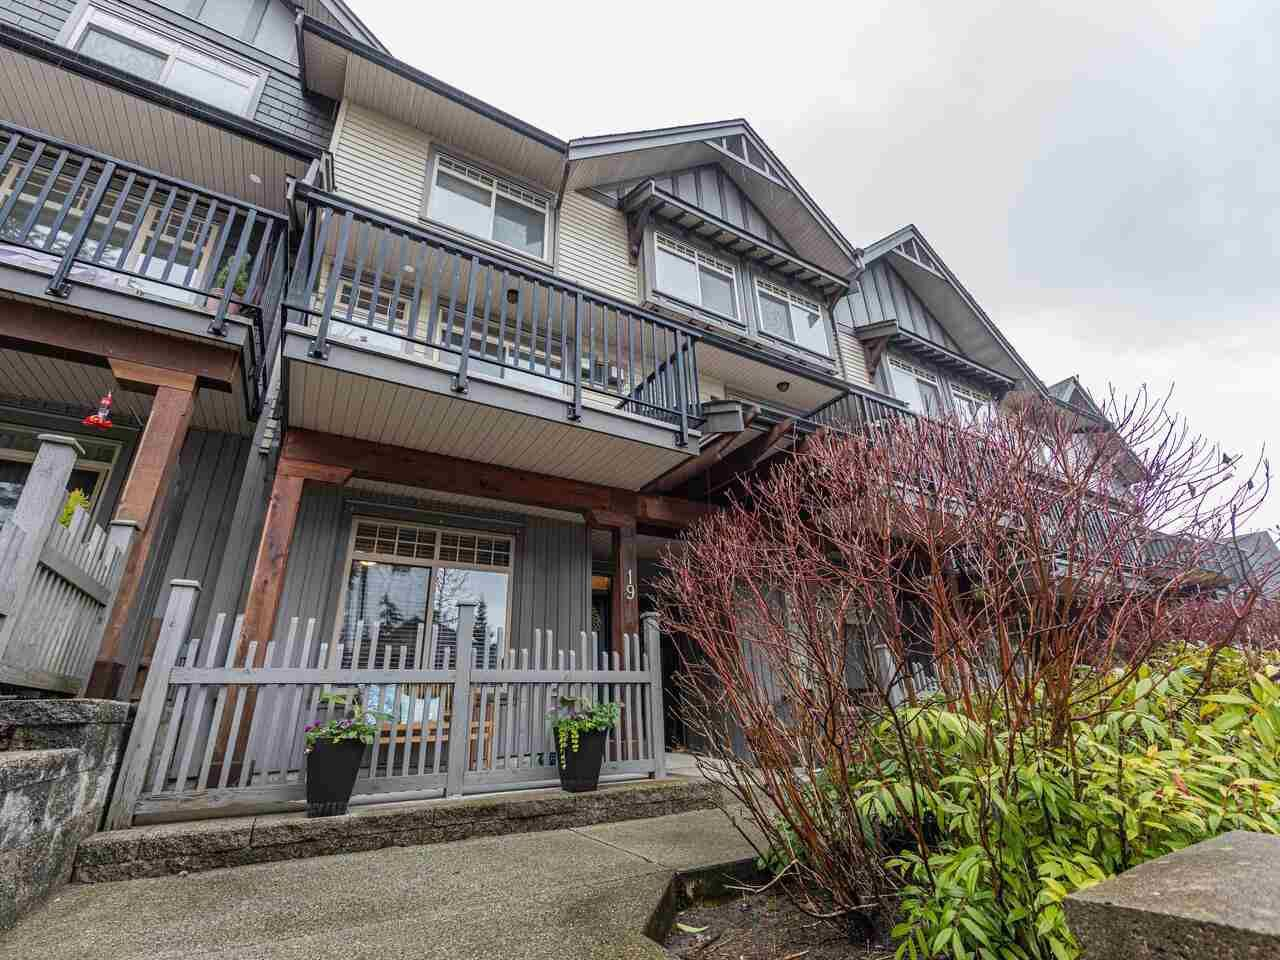 """Main Photo: 19 55 HAWTHORN Drive in Port Moody: Heritage Woods PM Townhouse for sale in """"Cobalt Sky by Parklane"""" : MLS®# R2584728"""